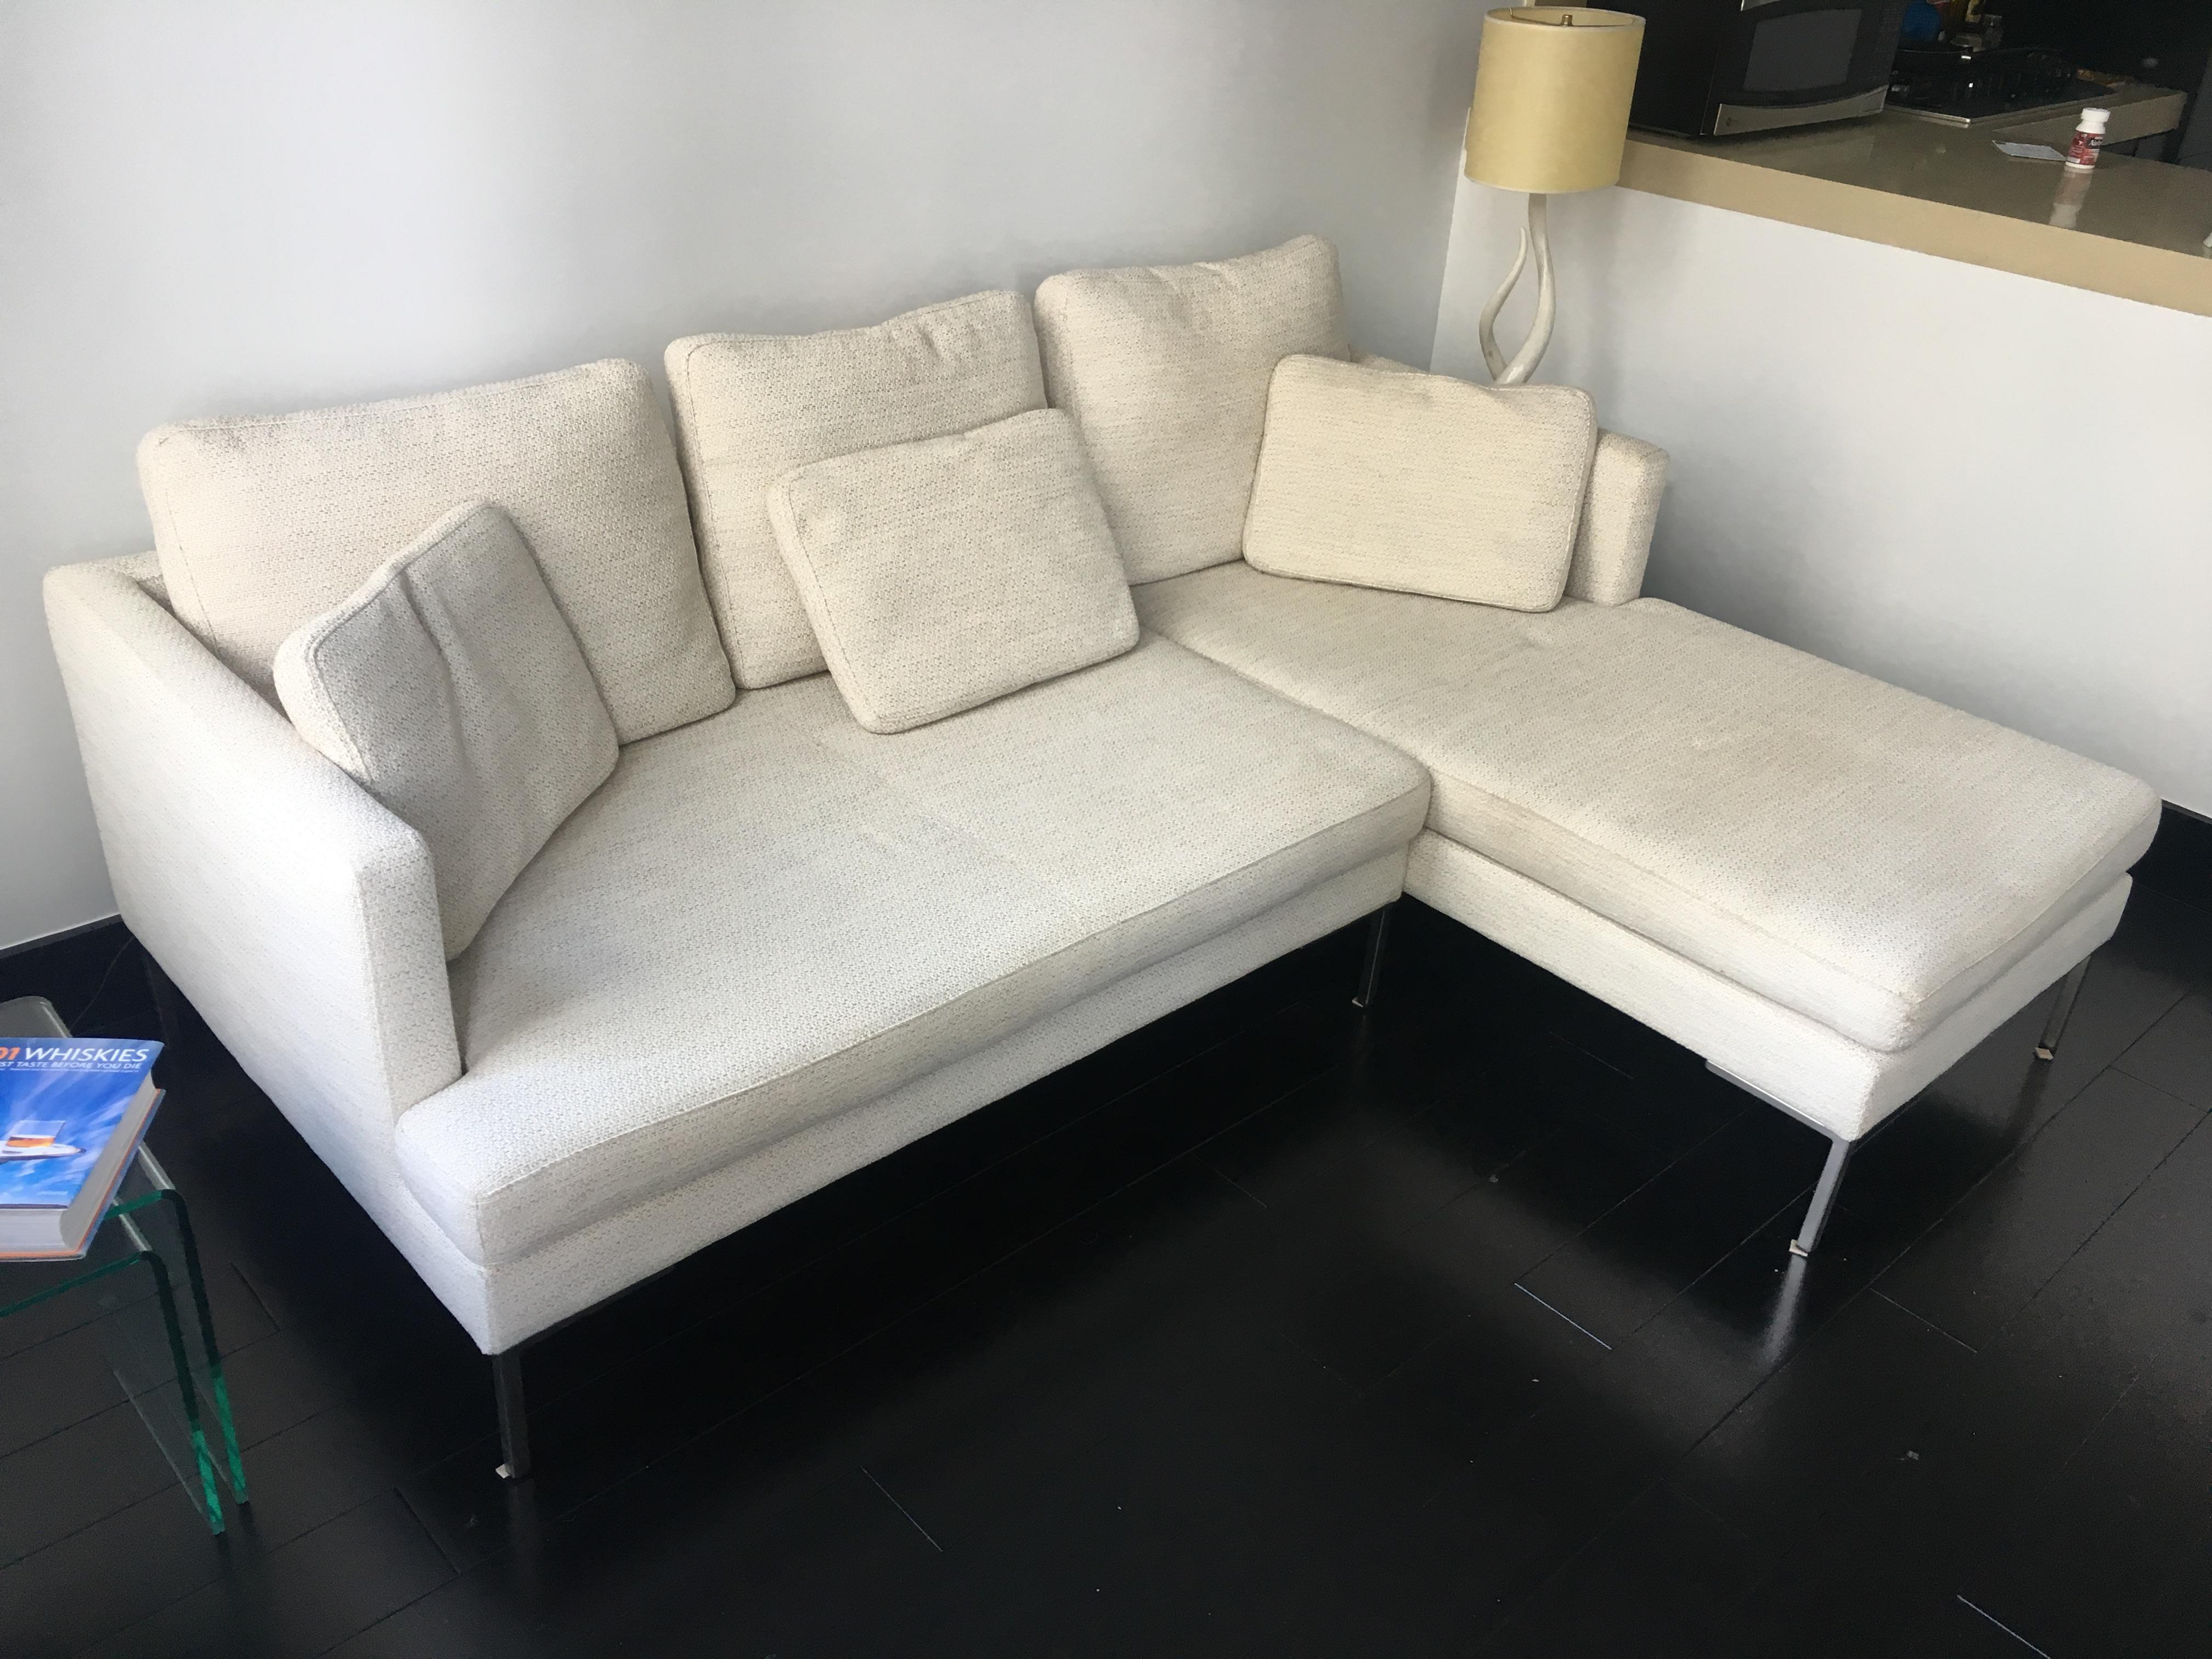 Up For Sale Is This Good Condition Boconcept Sofa. This Piece Was Purchased  About 5